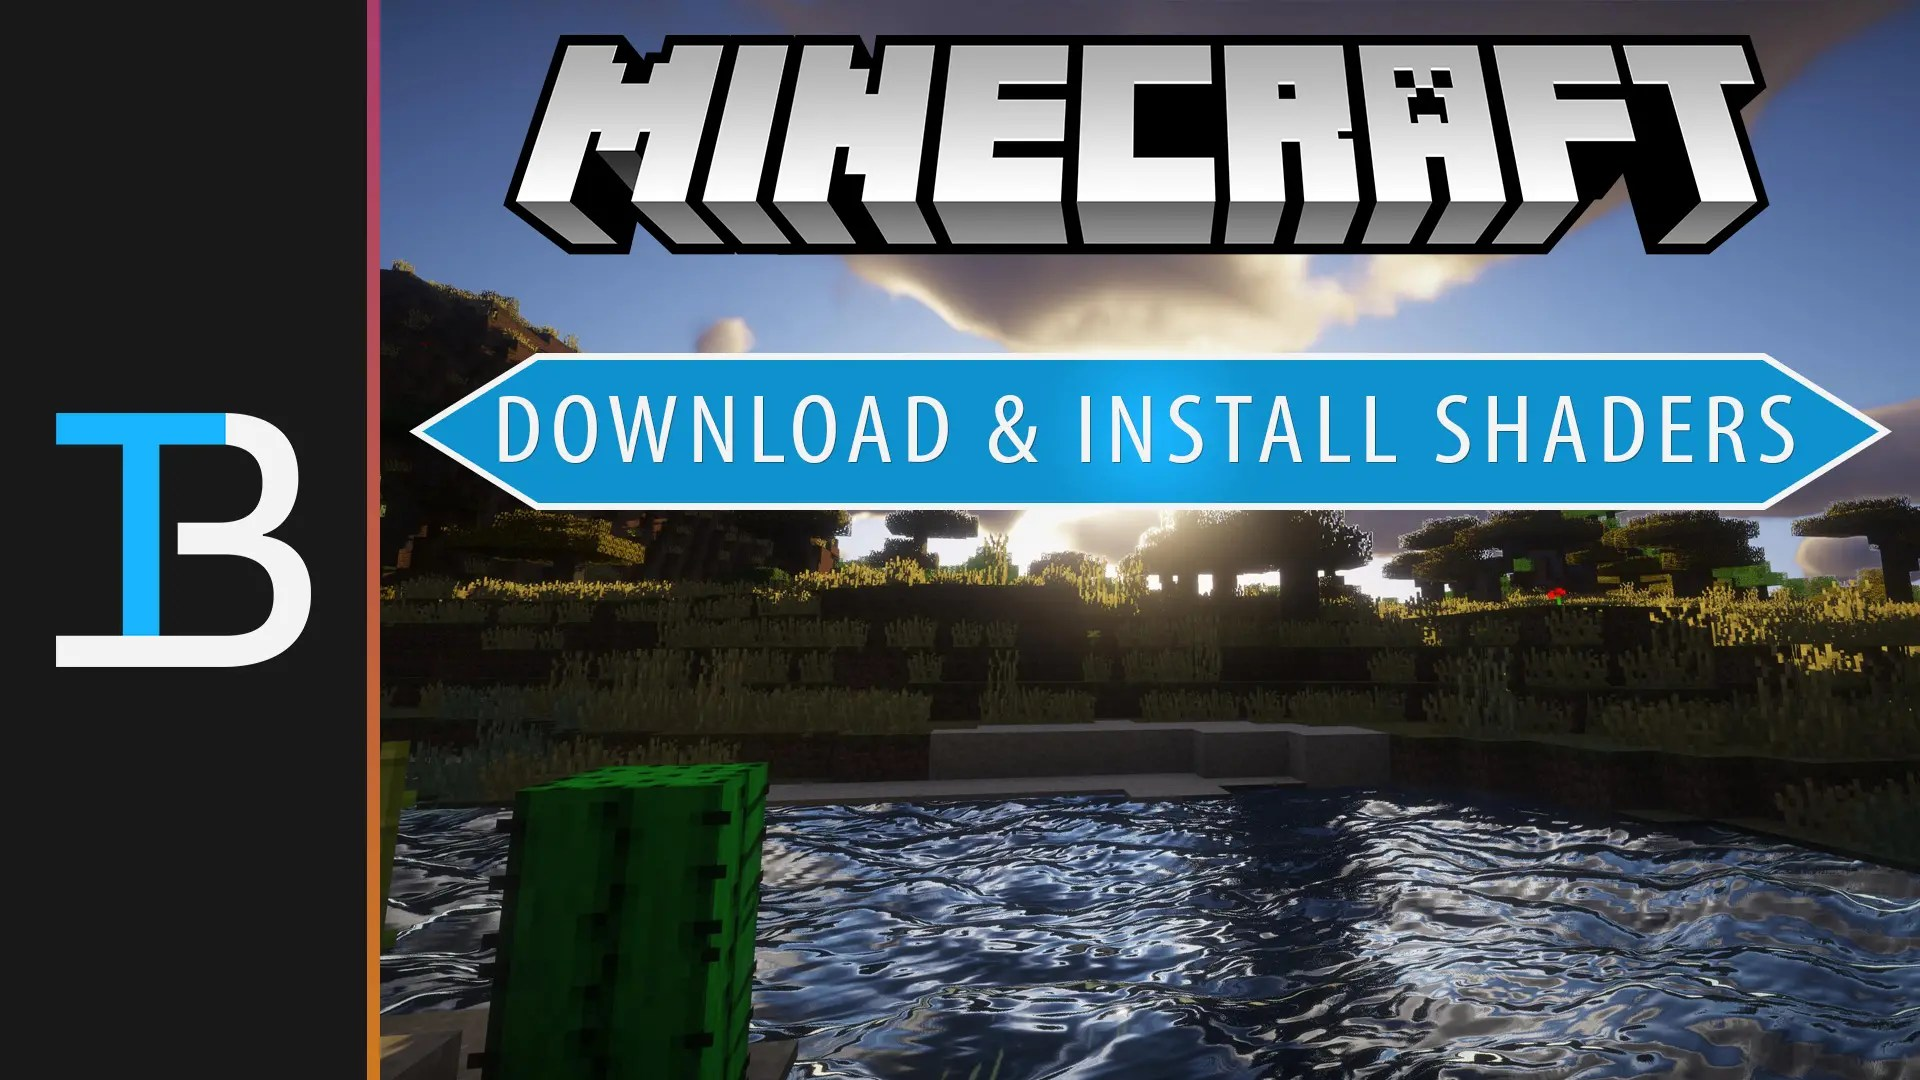 How To Download & Install Shaders - TheBreakdown.xyz